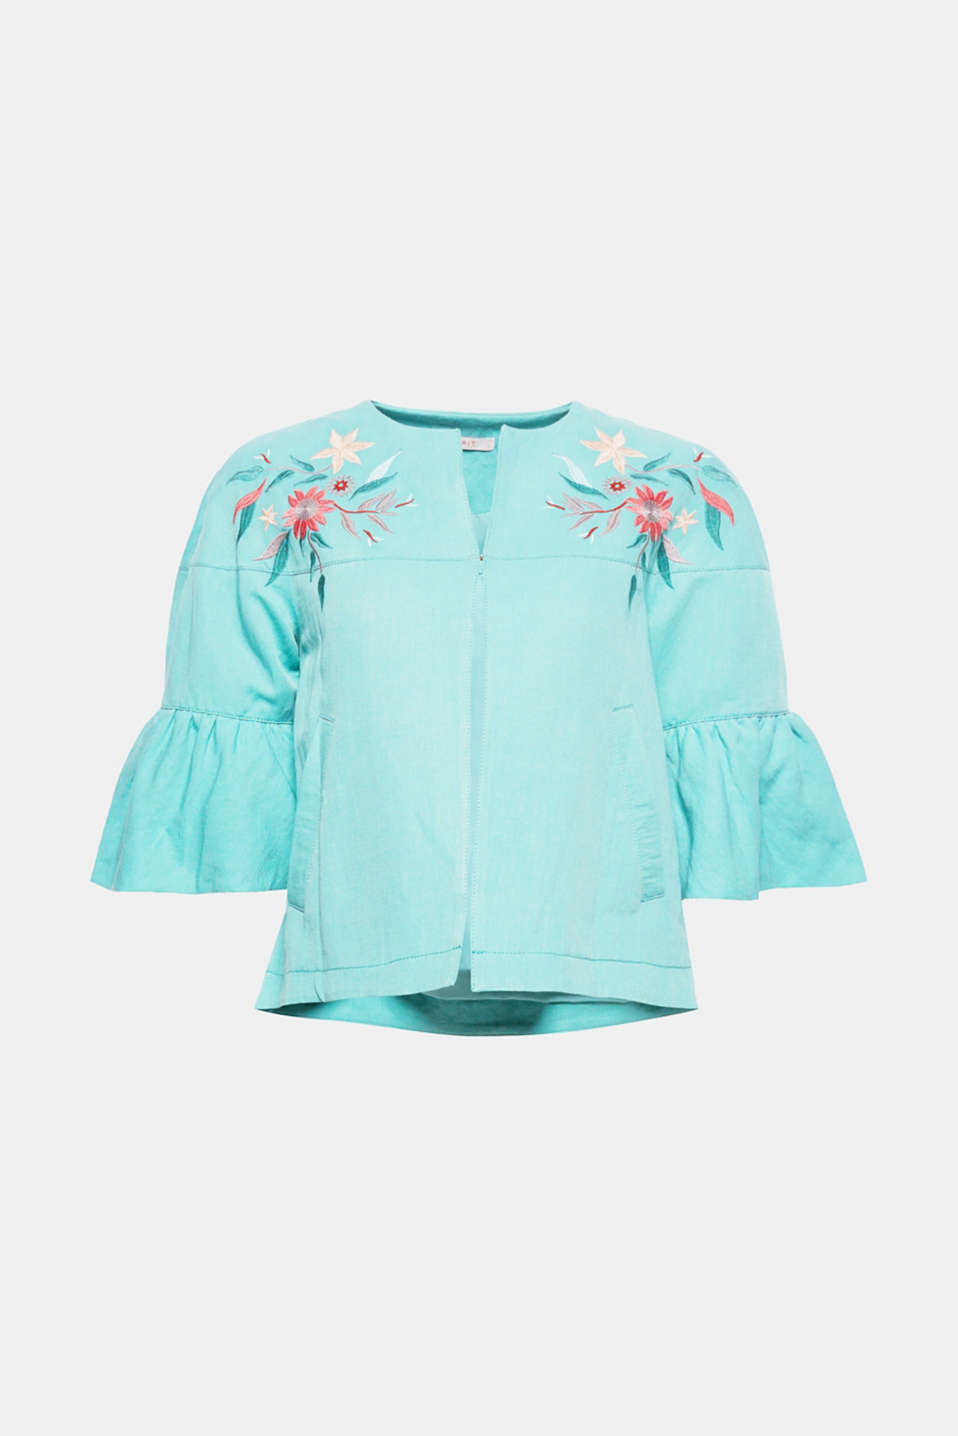 Full-on flower power fashion: the colourful floral embroidery and three-quarter length flounce sleeves make this flared jacket something special!